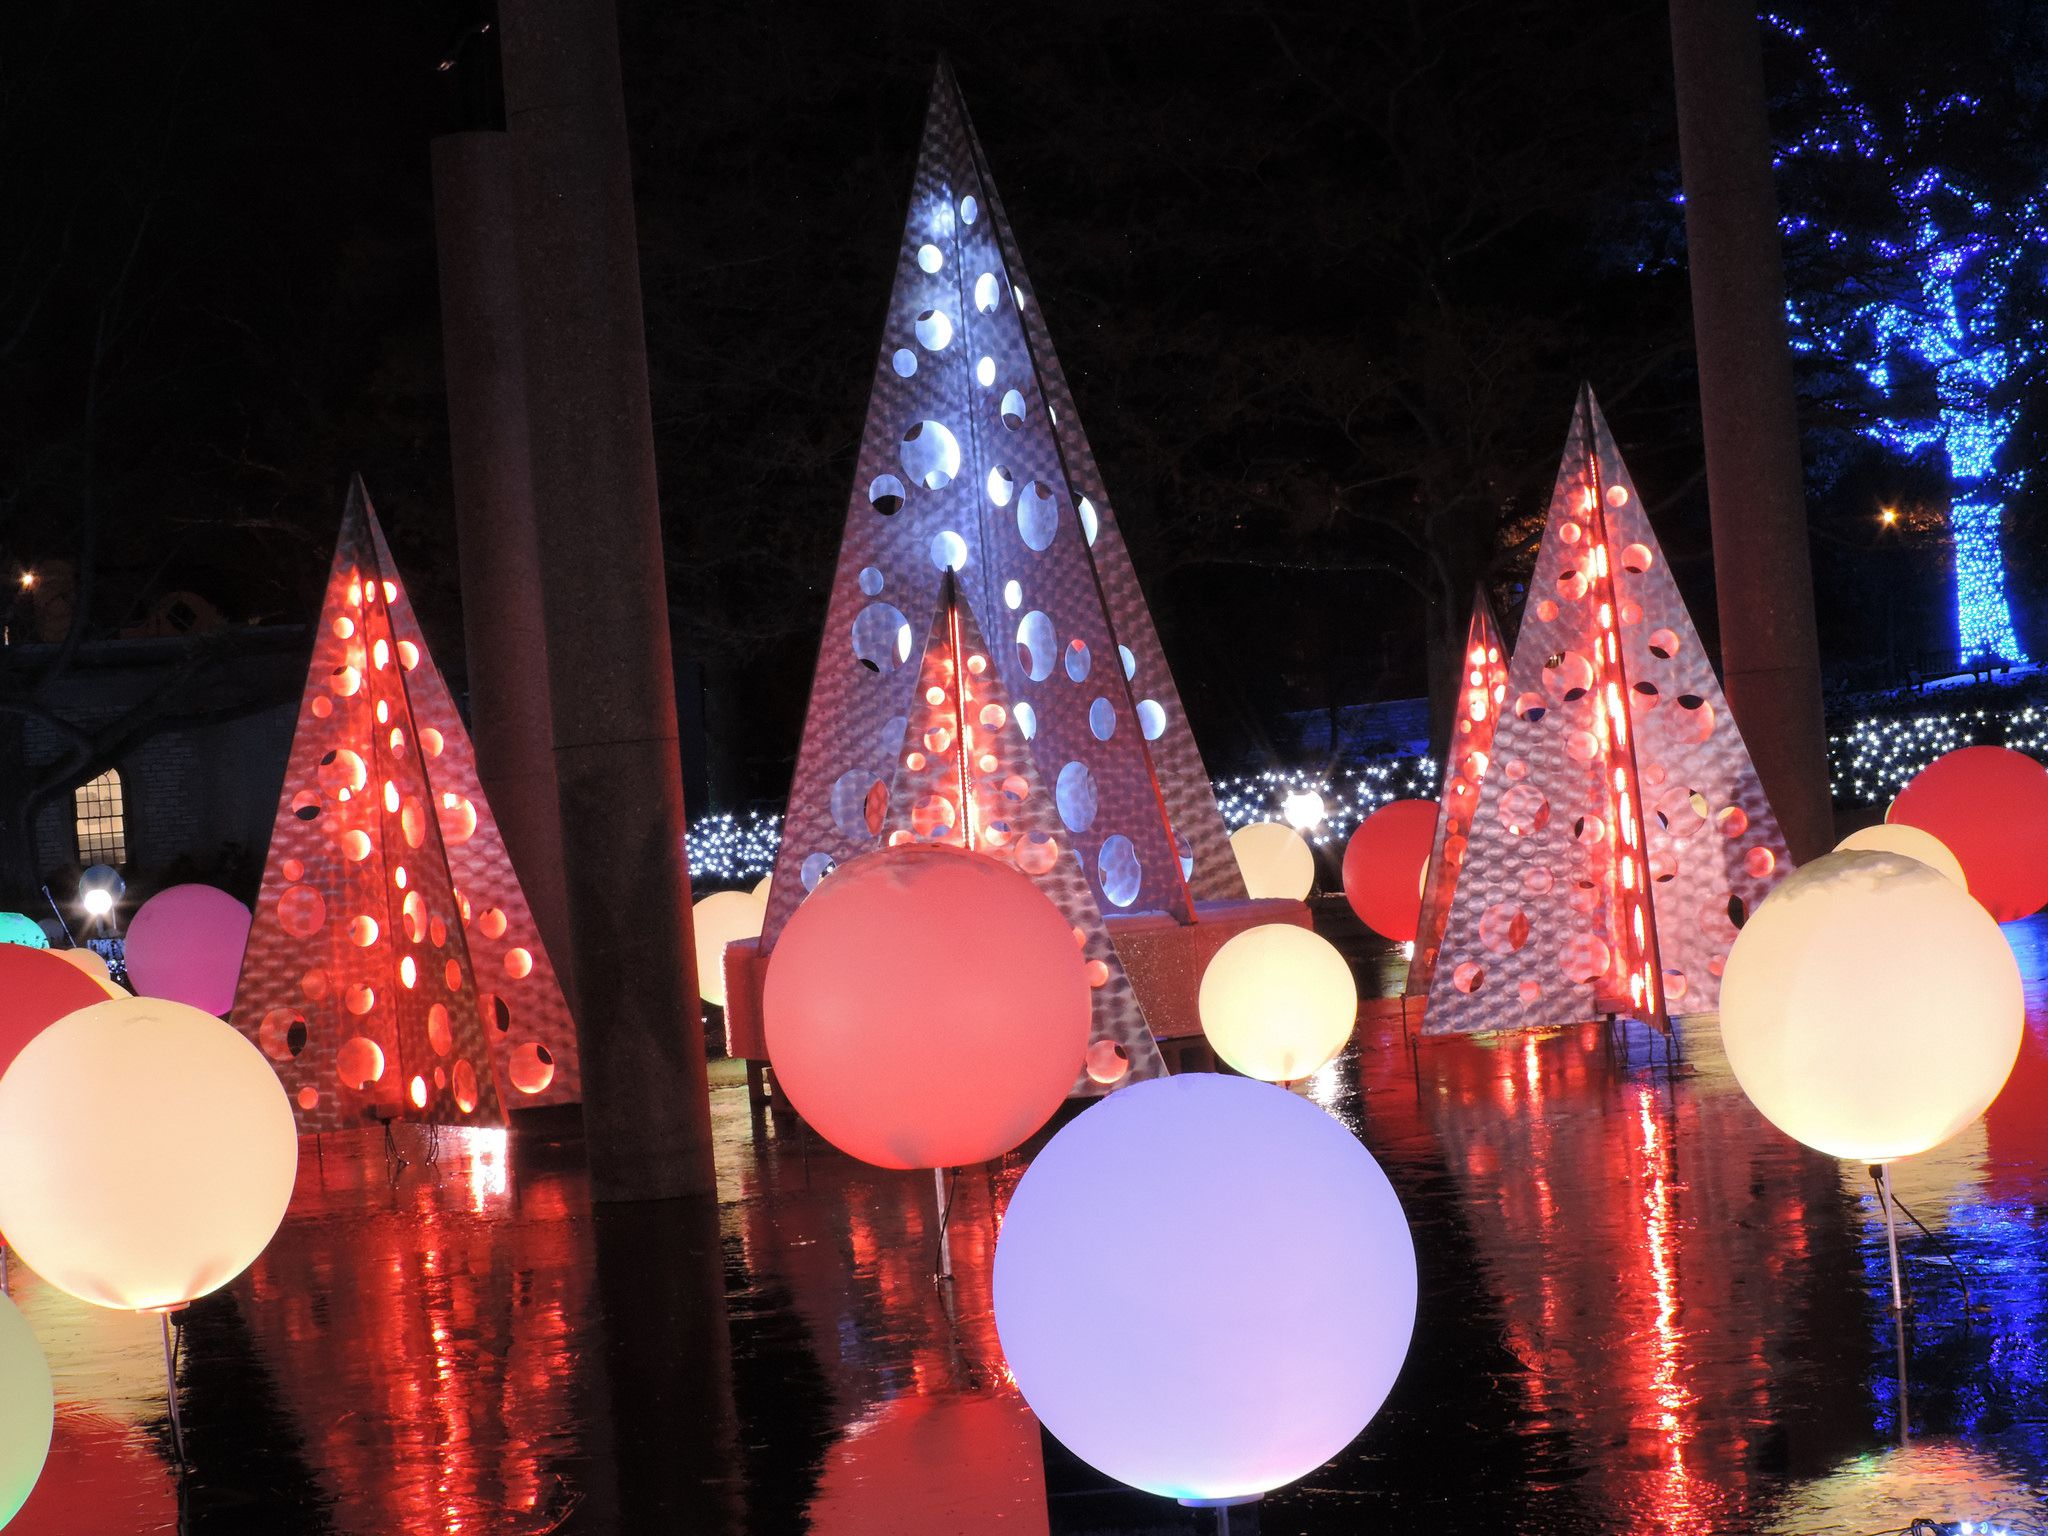 Garden Glow Holiday Lights at Missouri Botanical Garden